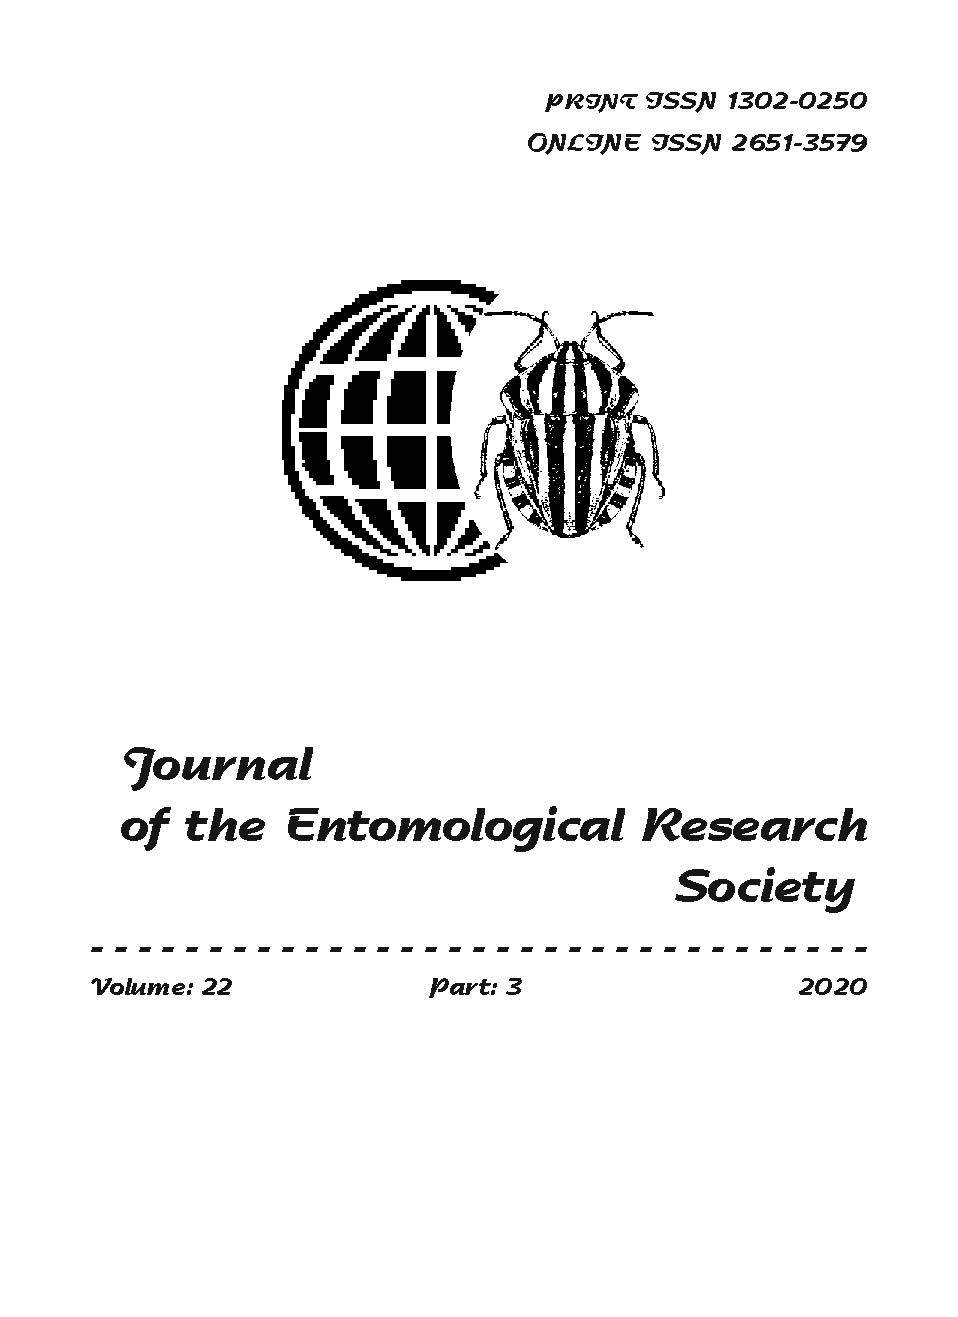 View Vol. 22 No. 3 (2020): Journal of the Entomological Research Society